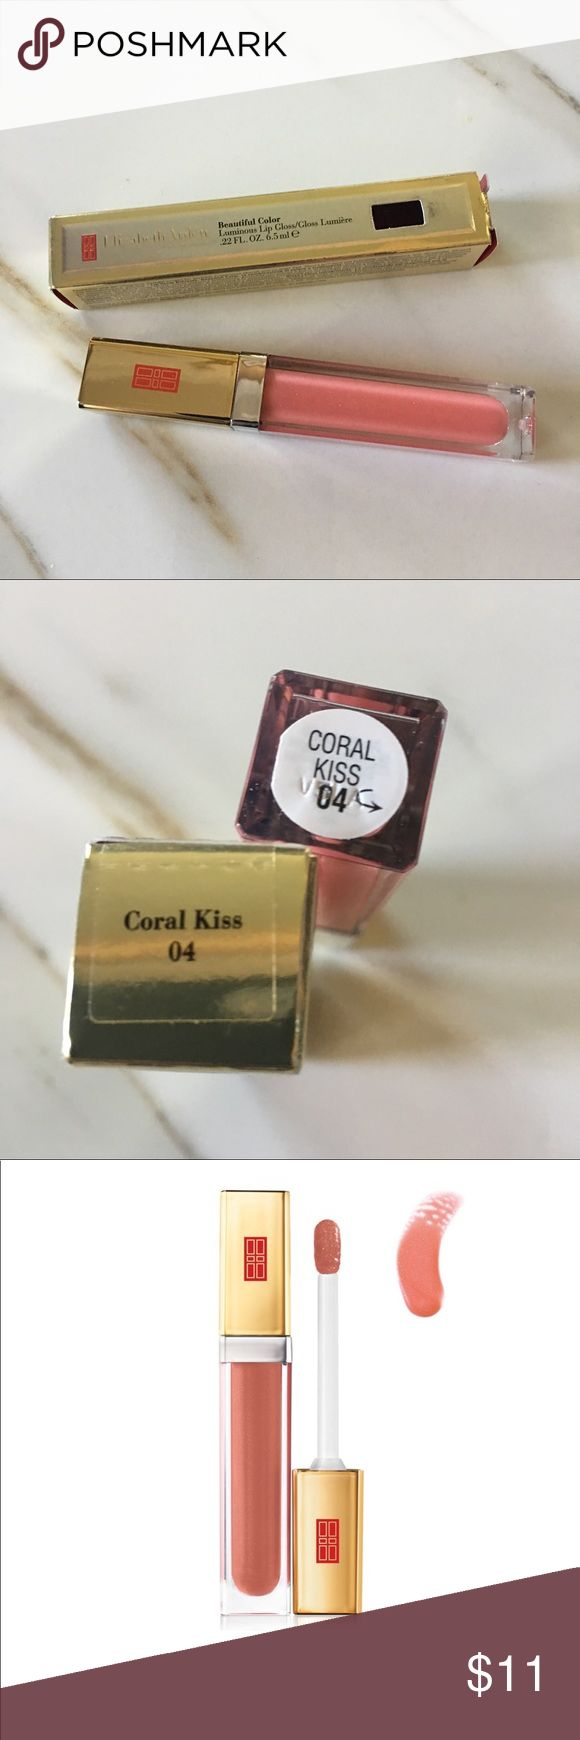 Coral Kiss! Elizabeth Arden Lip Gloss 0.22 fl. oz./65ml each. Each gloss is packaged in a box, new, never opened, never used. Each gloss has a built-in mirror on the side of the tube. Elizabeth Arden Makeup Lip Balm & Gloss